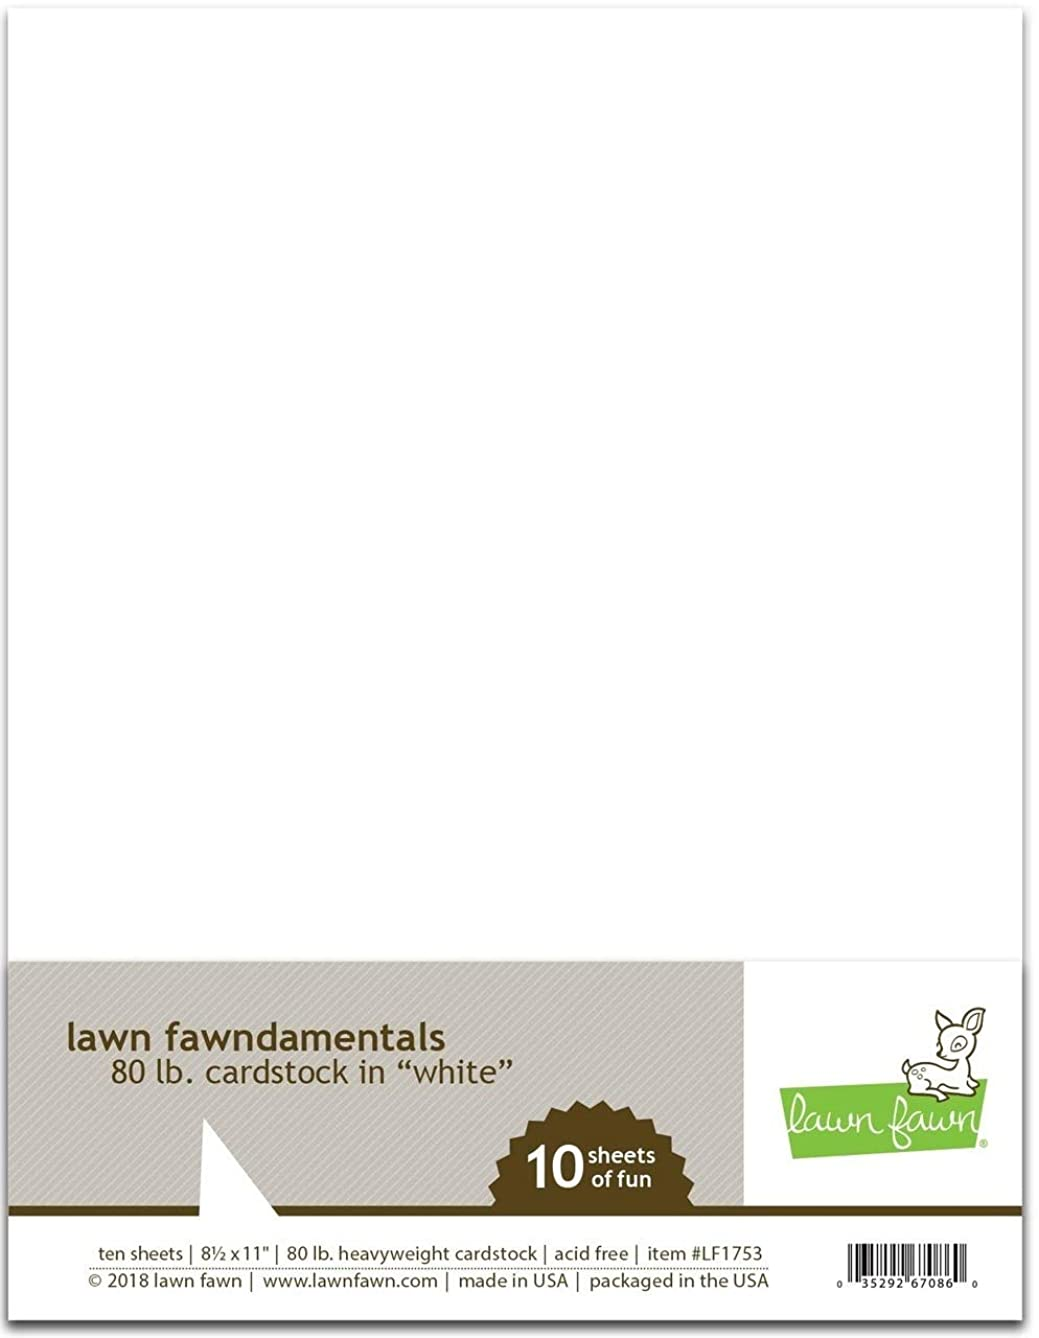 Lawn Fawn 80 lb Cardstock - White - 10 Sheets, 8 1/2